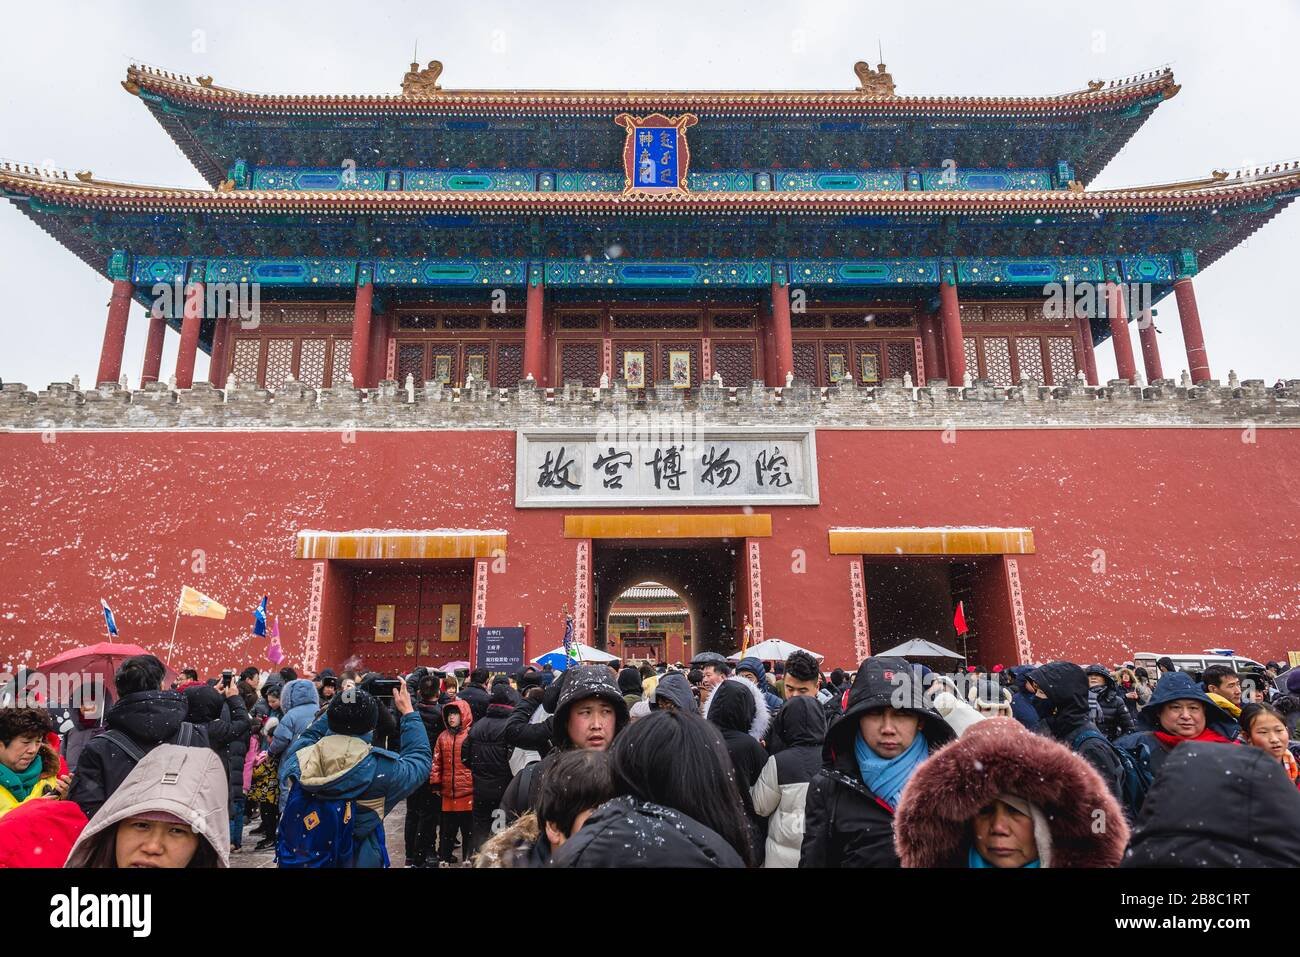 Tourists in front of Shenwumen - Gate of Divine Prowess also called Gate of Divine Might - northern gate of Forbidden City in Beijing, China Stock Photo